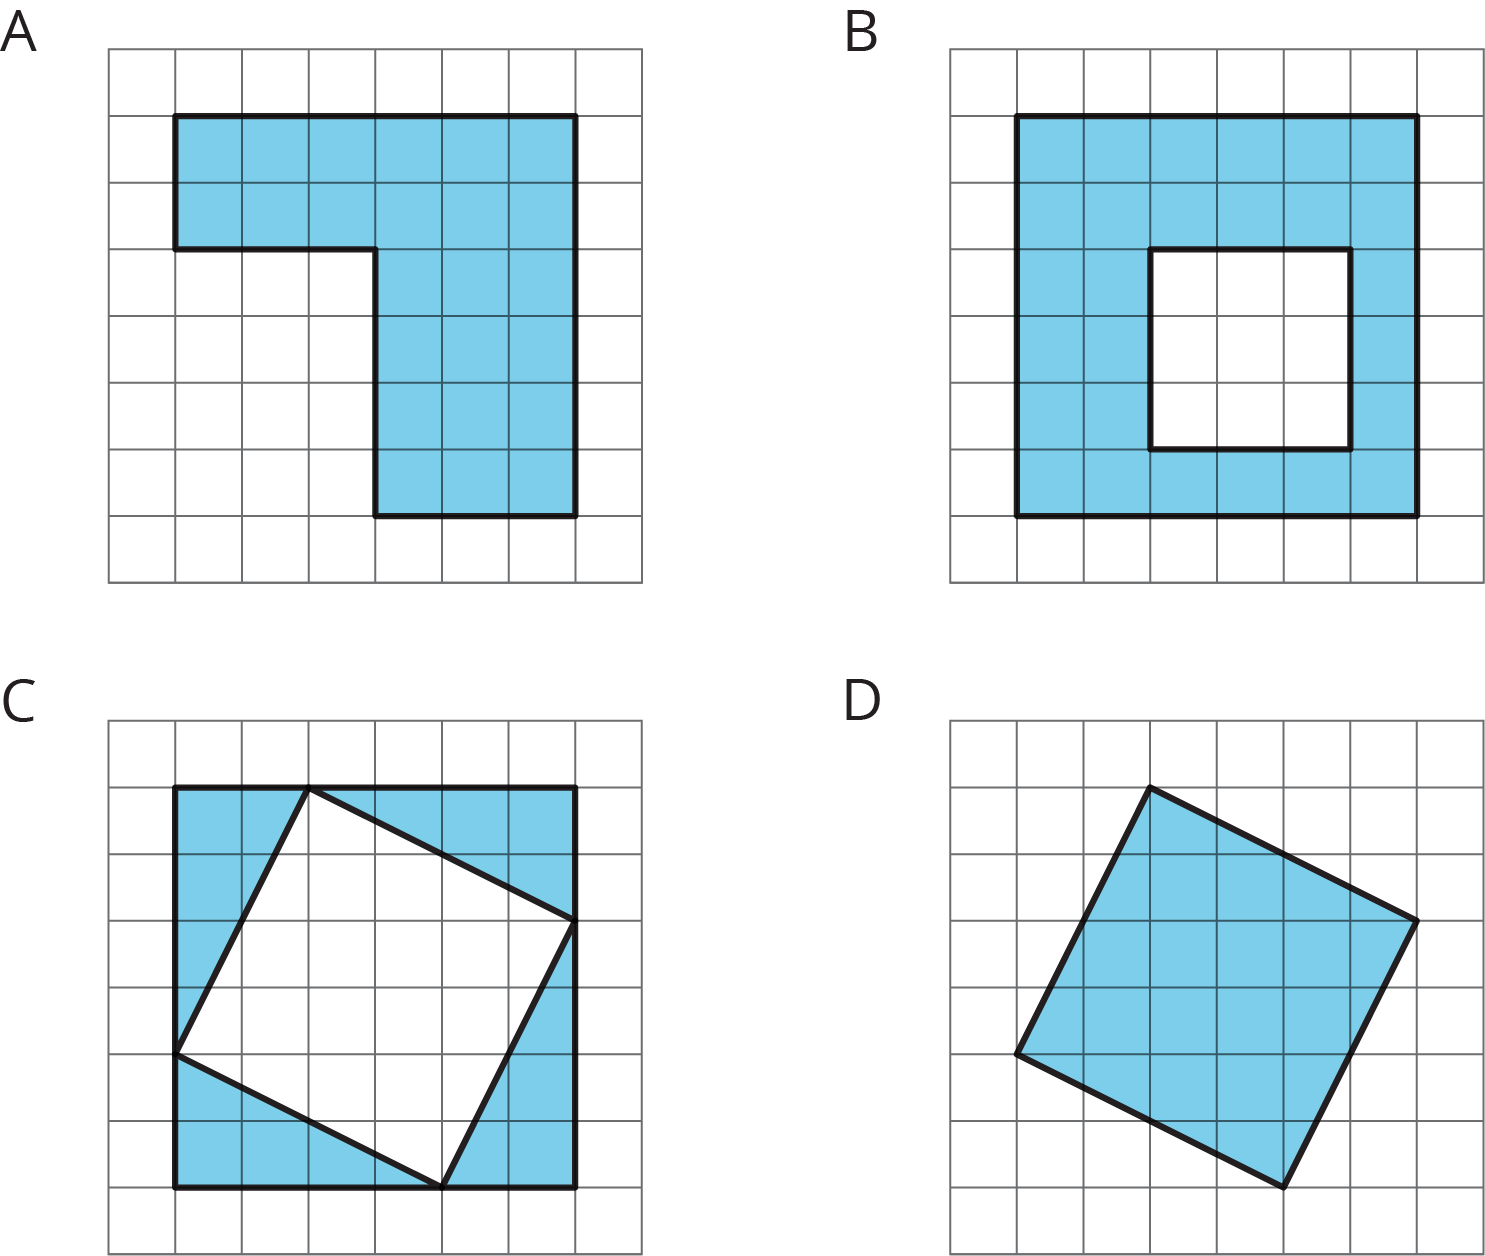 Four figures, each on a white square grid. Figure A is a green corner piece with 6 sides. Figure B a 6 by 6 green square with a 3 by 3 white square inside. Figure C a 6 by 6 green square with a tilted white square inside. Figure D is a green tilted square.